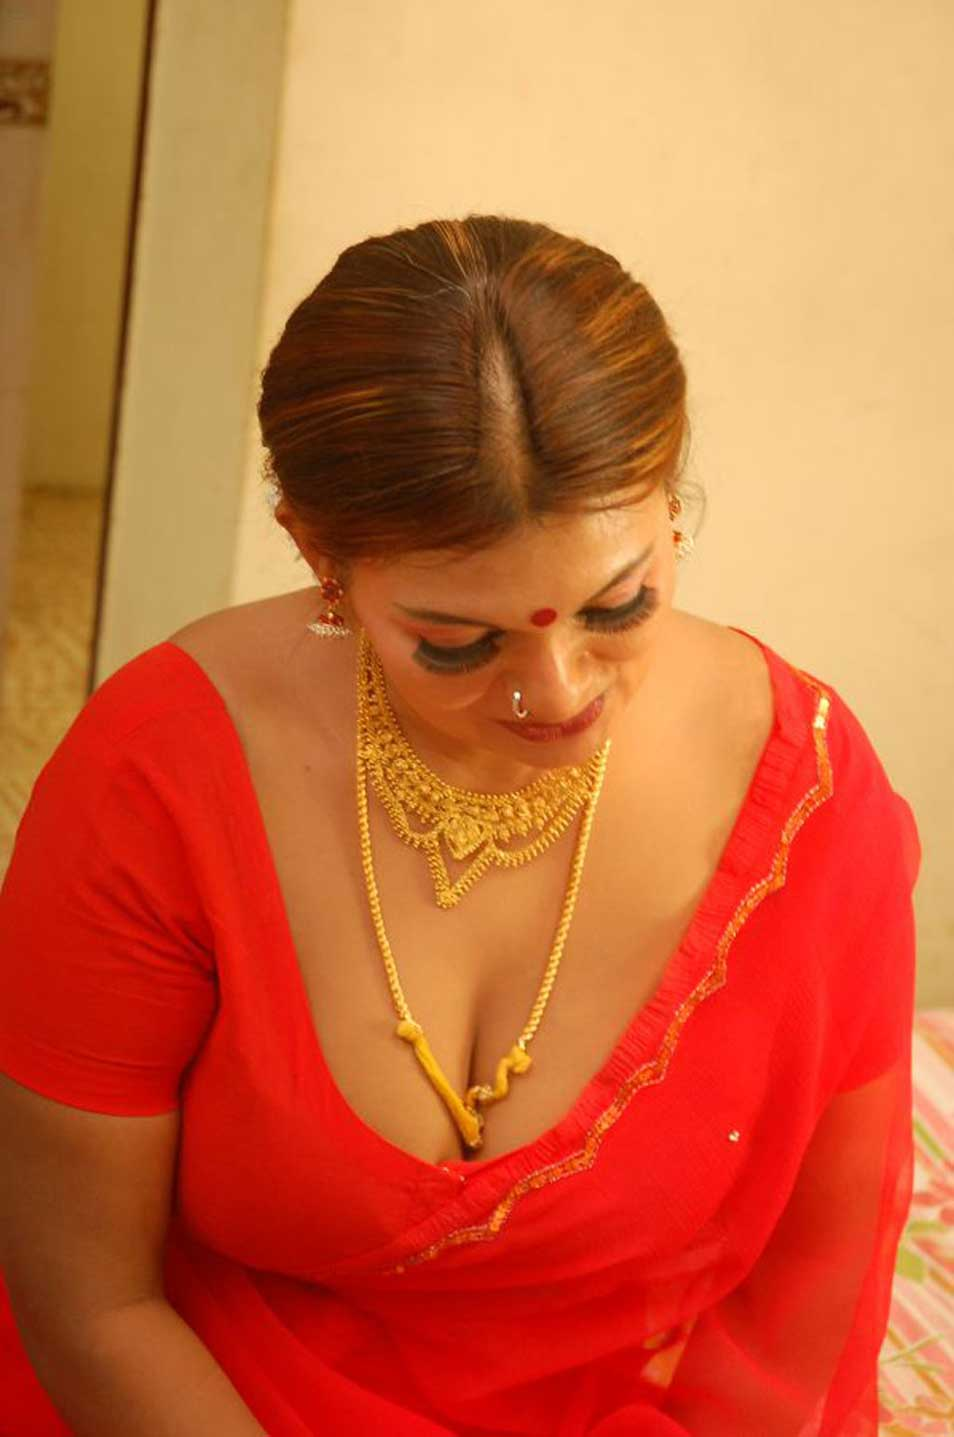 Tamil Actress Jennifer Spicy In Saree Stills Beautiful -6819